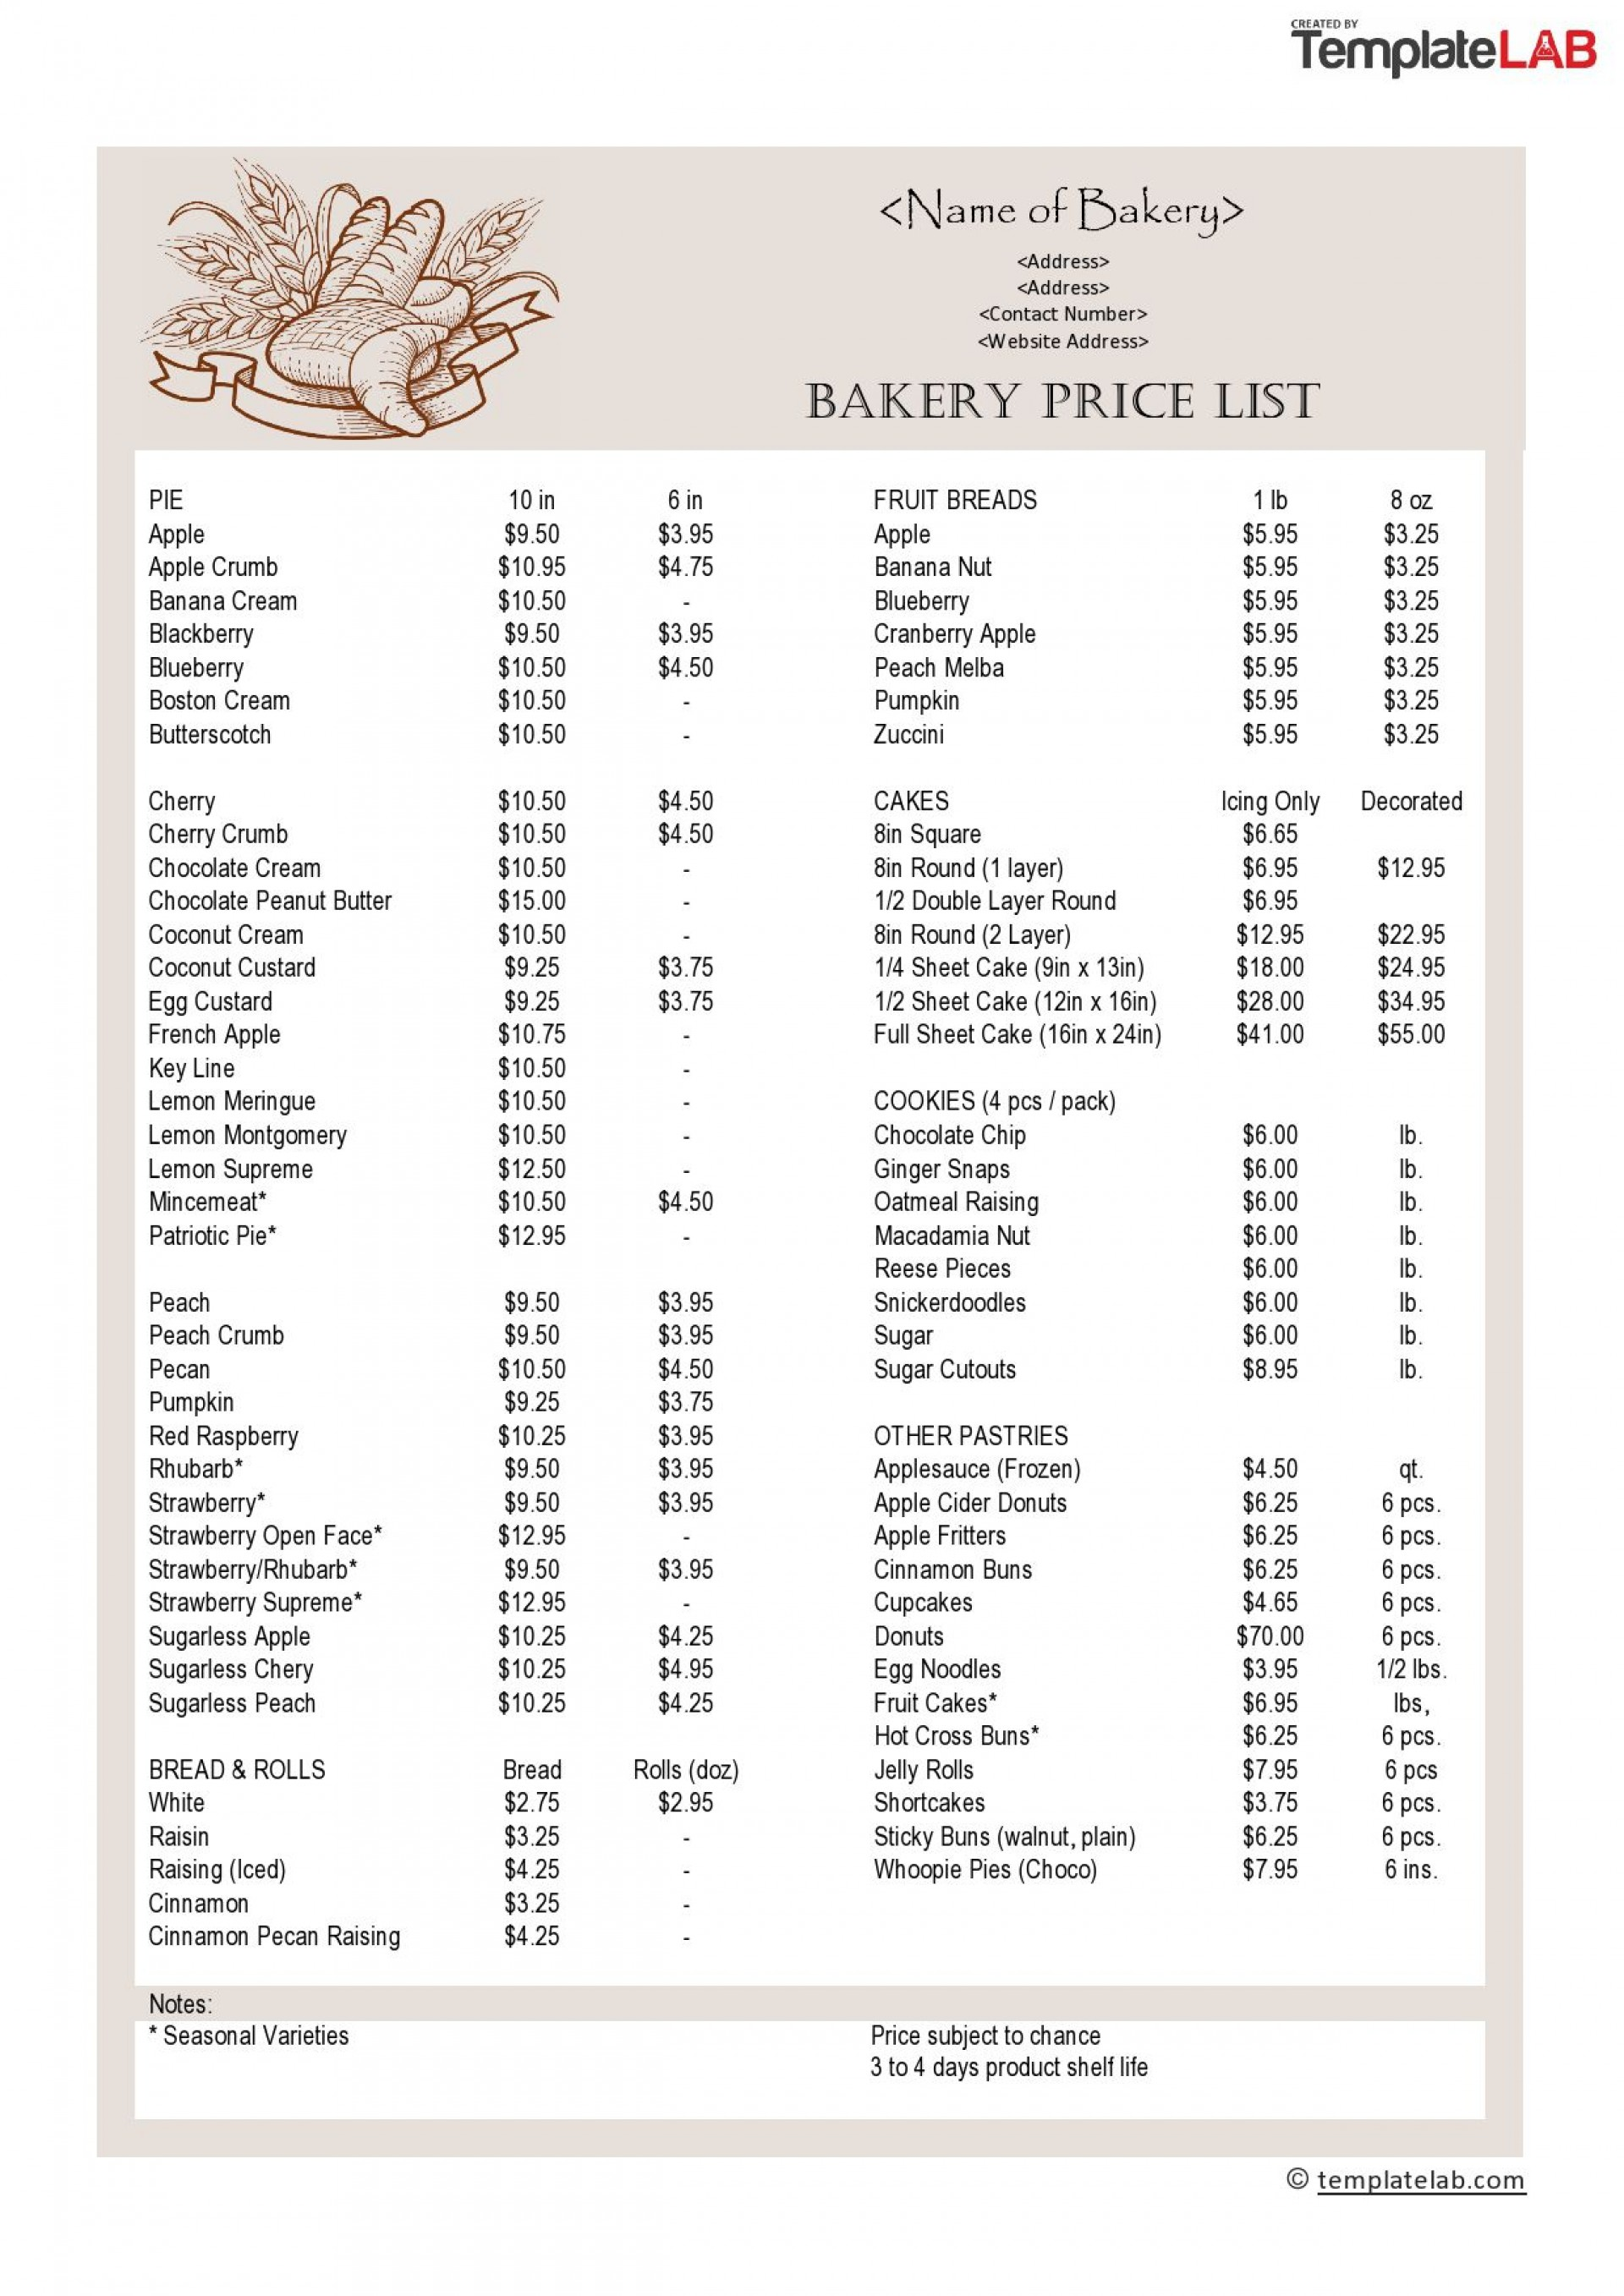 000 Awful Wholesale Price List Template Highest Quality  Bakery1920